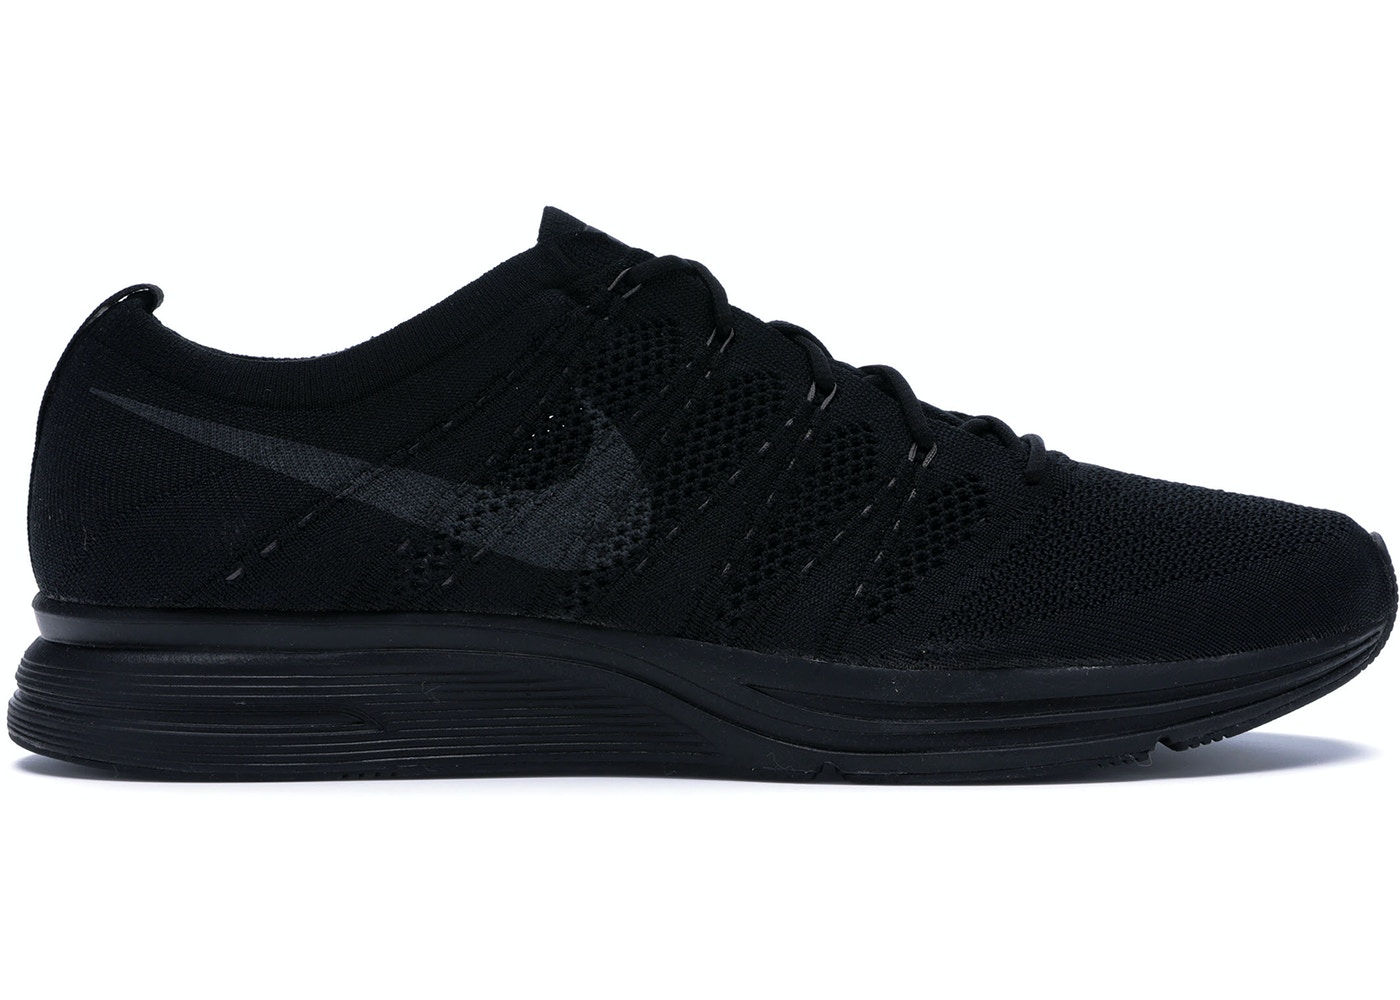 4329a270dd79f Flyknit Trainer Triple Black - AH8396-004